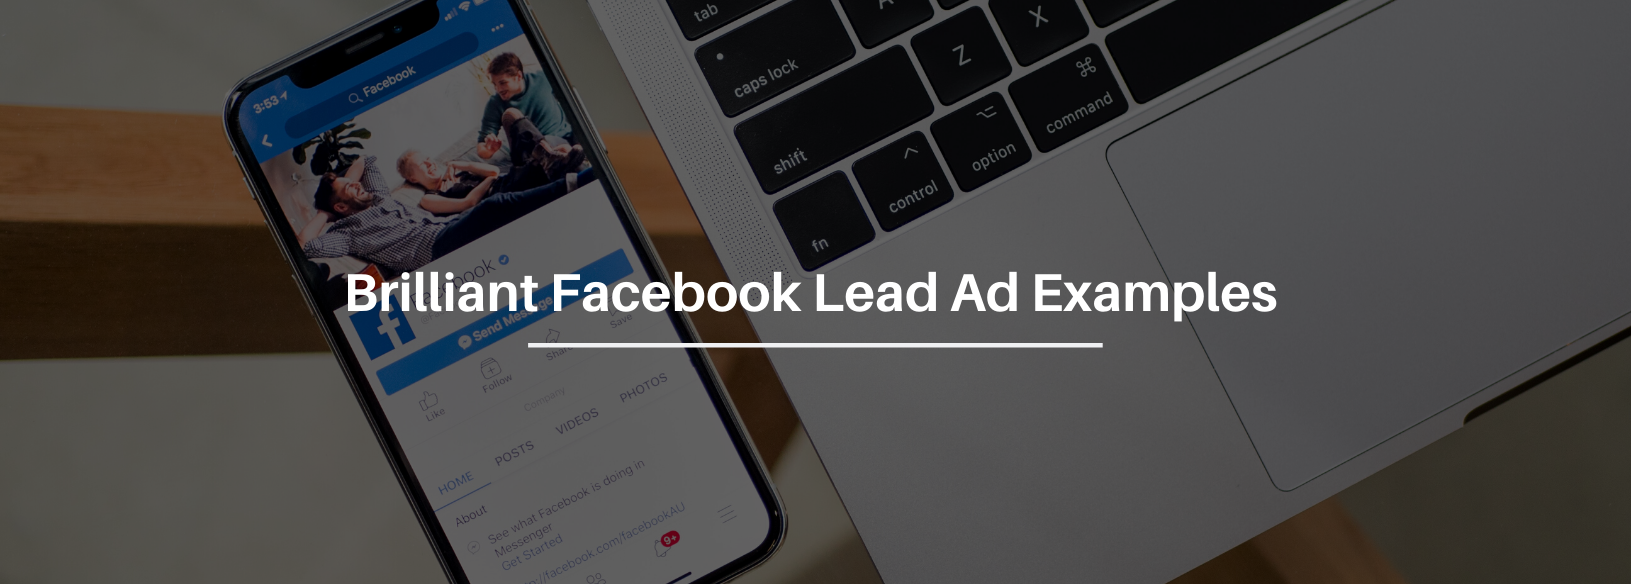 3 Brilliant Facebook Lead Ads That You Can Learn From